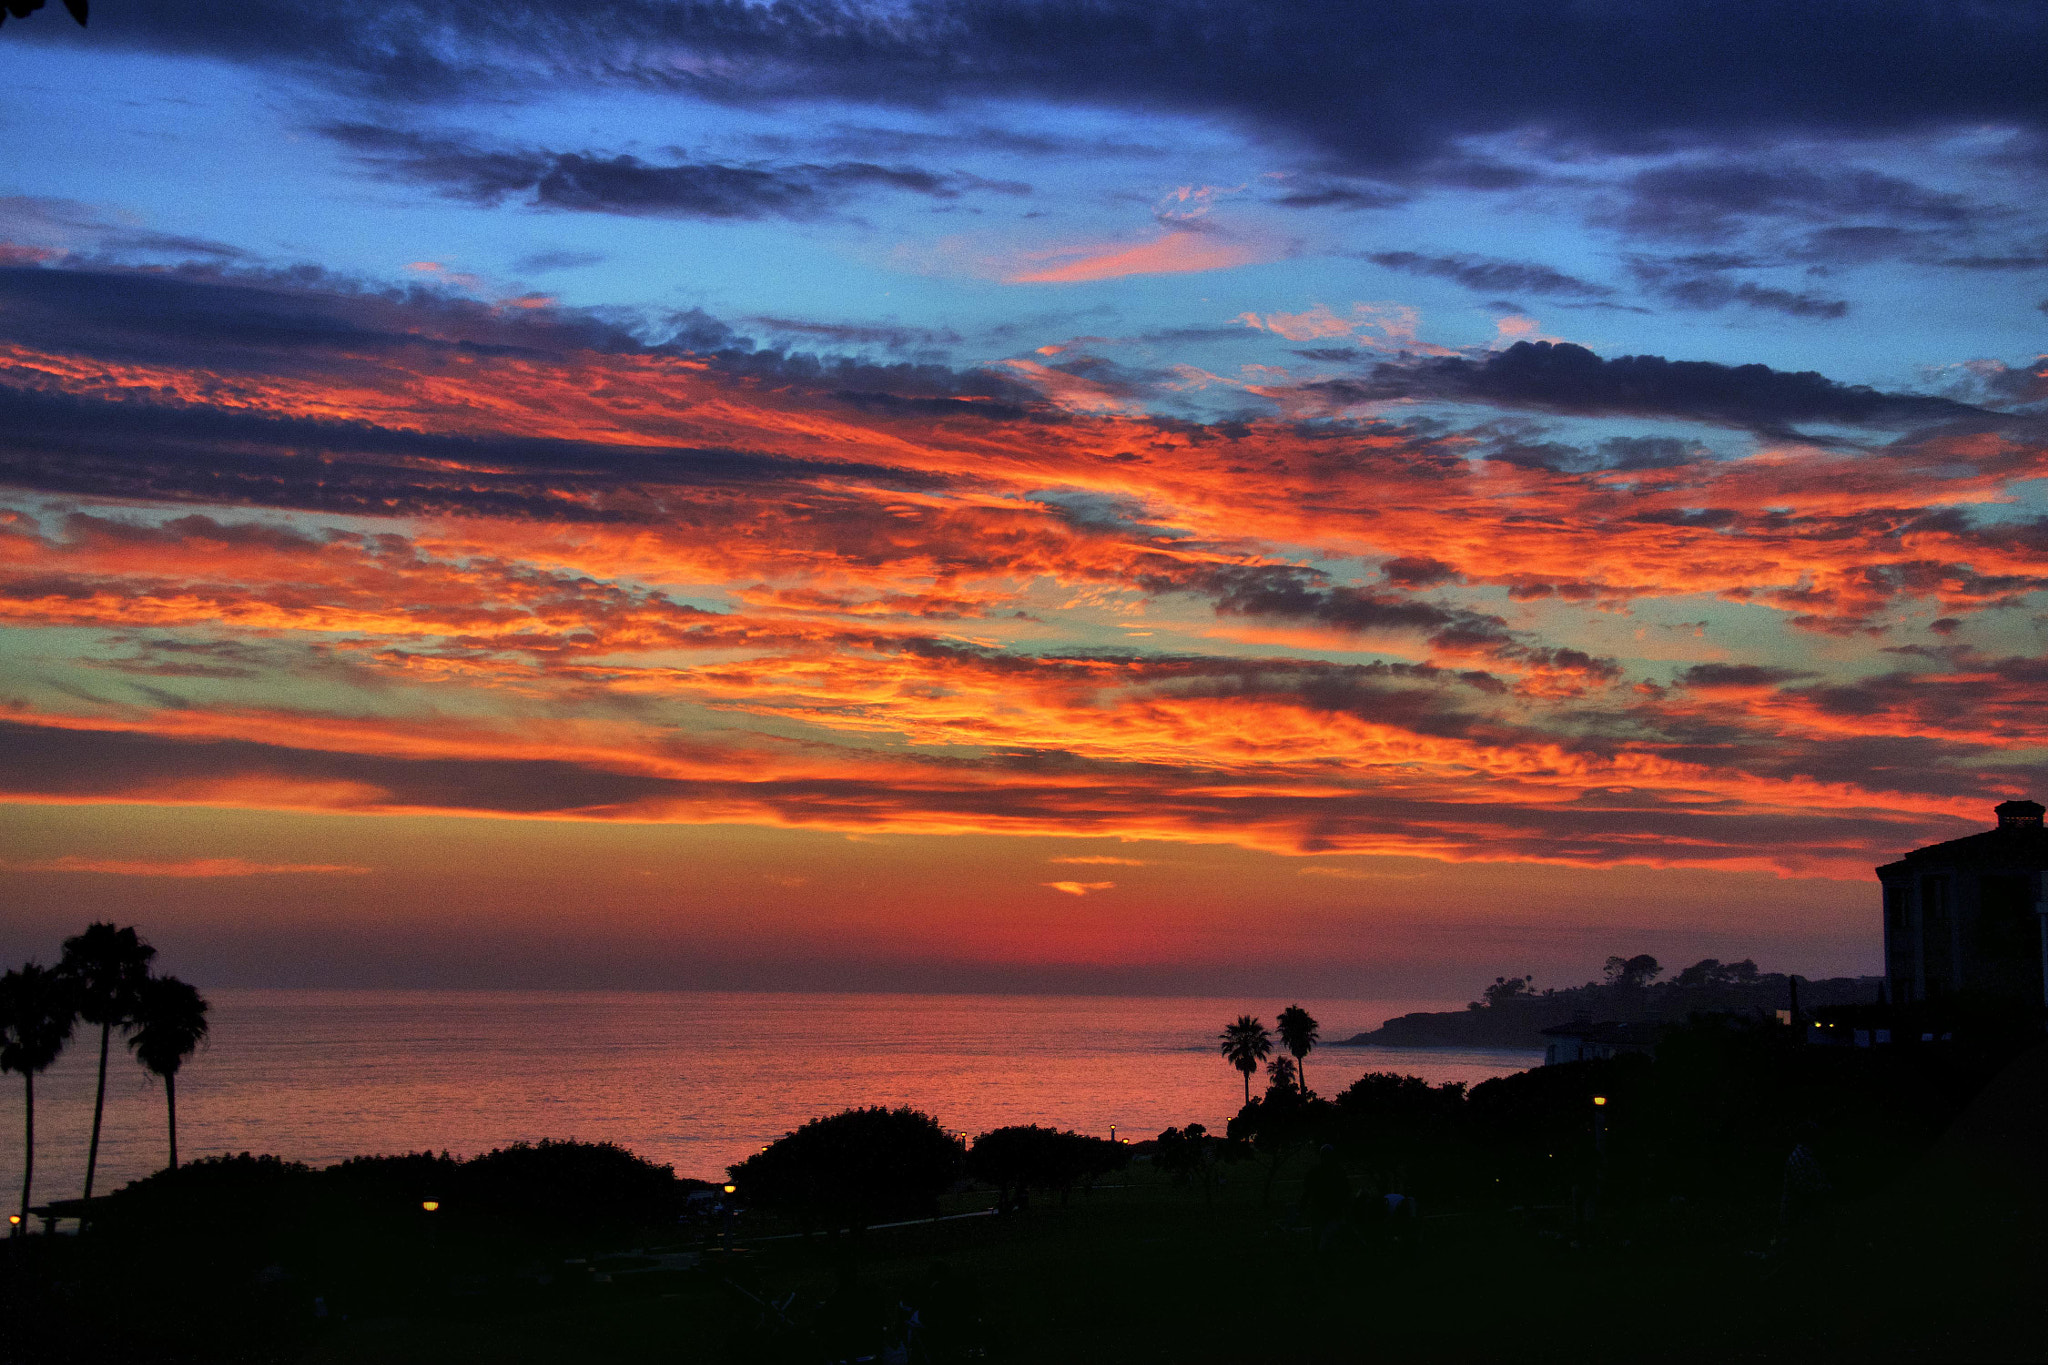 Photograph Sunset Salt Creek - Dana Point - July 13, 2012 by Rich Cruse on 500px